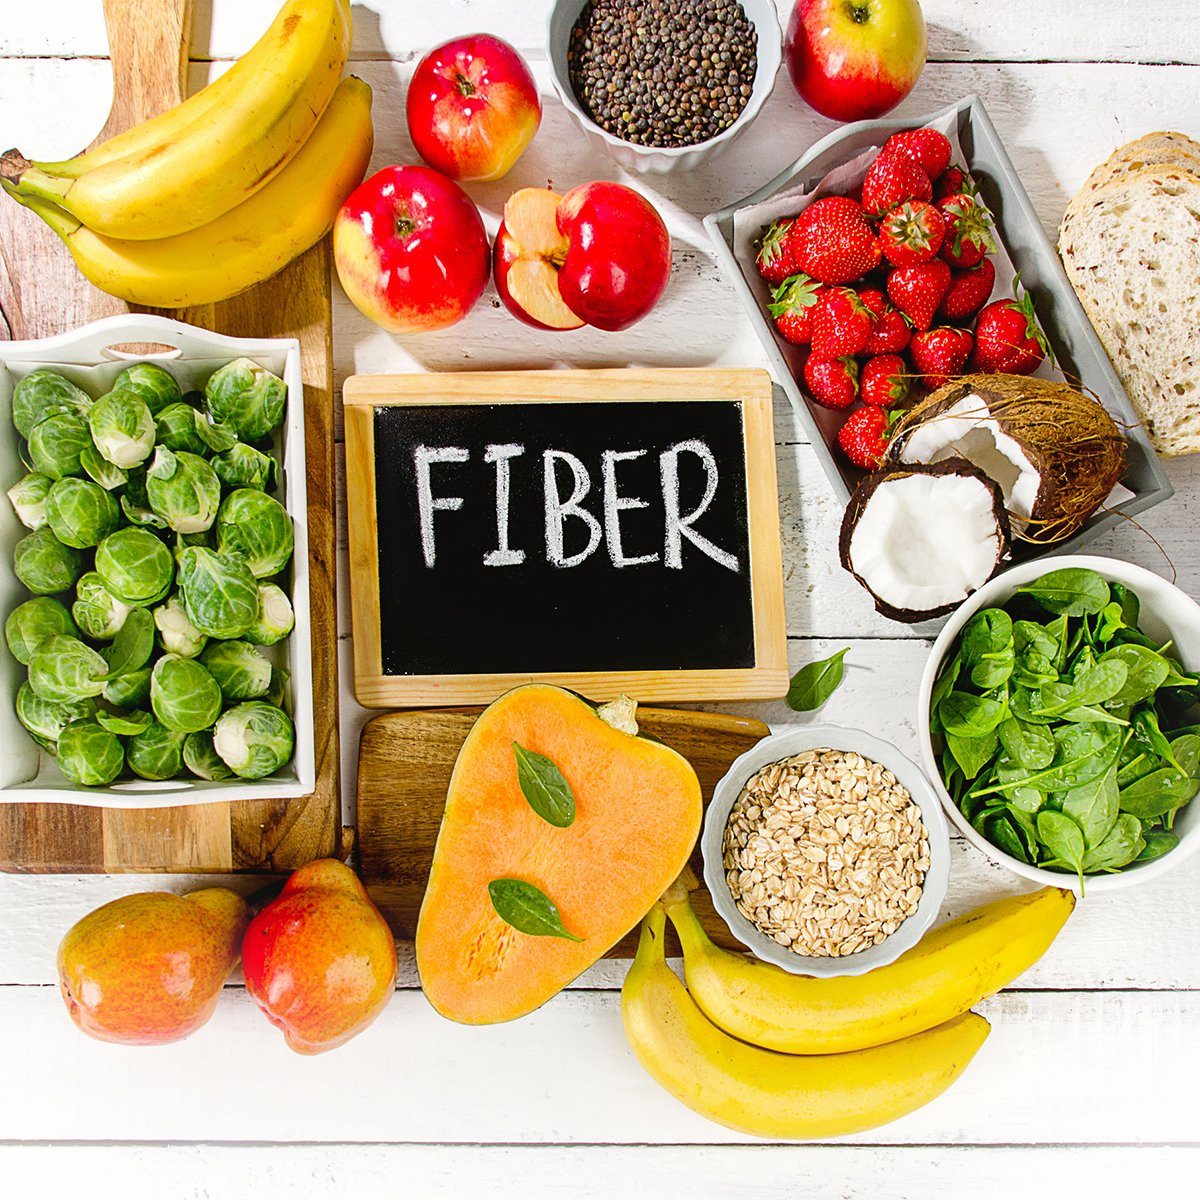 Image of fruits and vegetables high in fiber